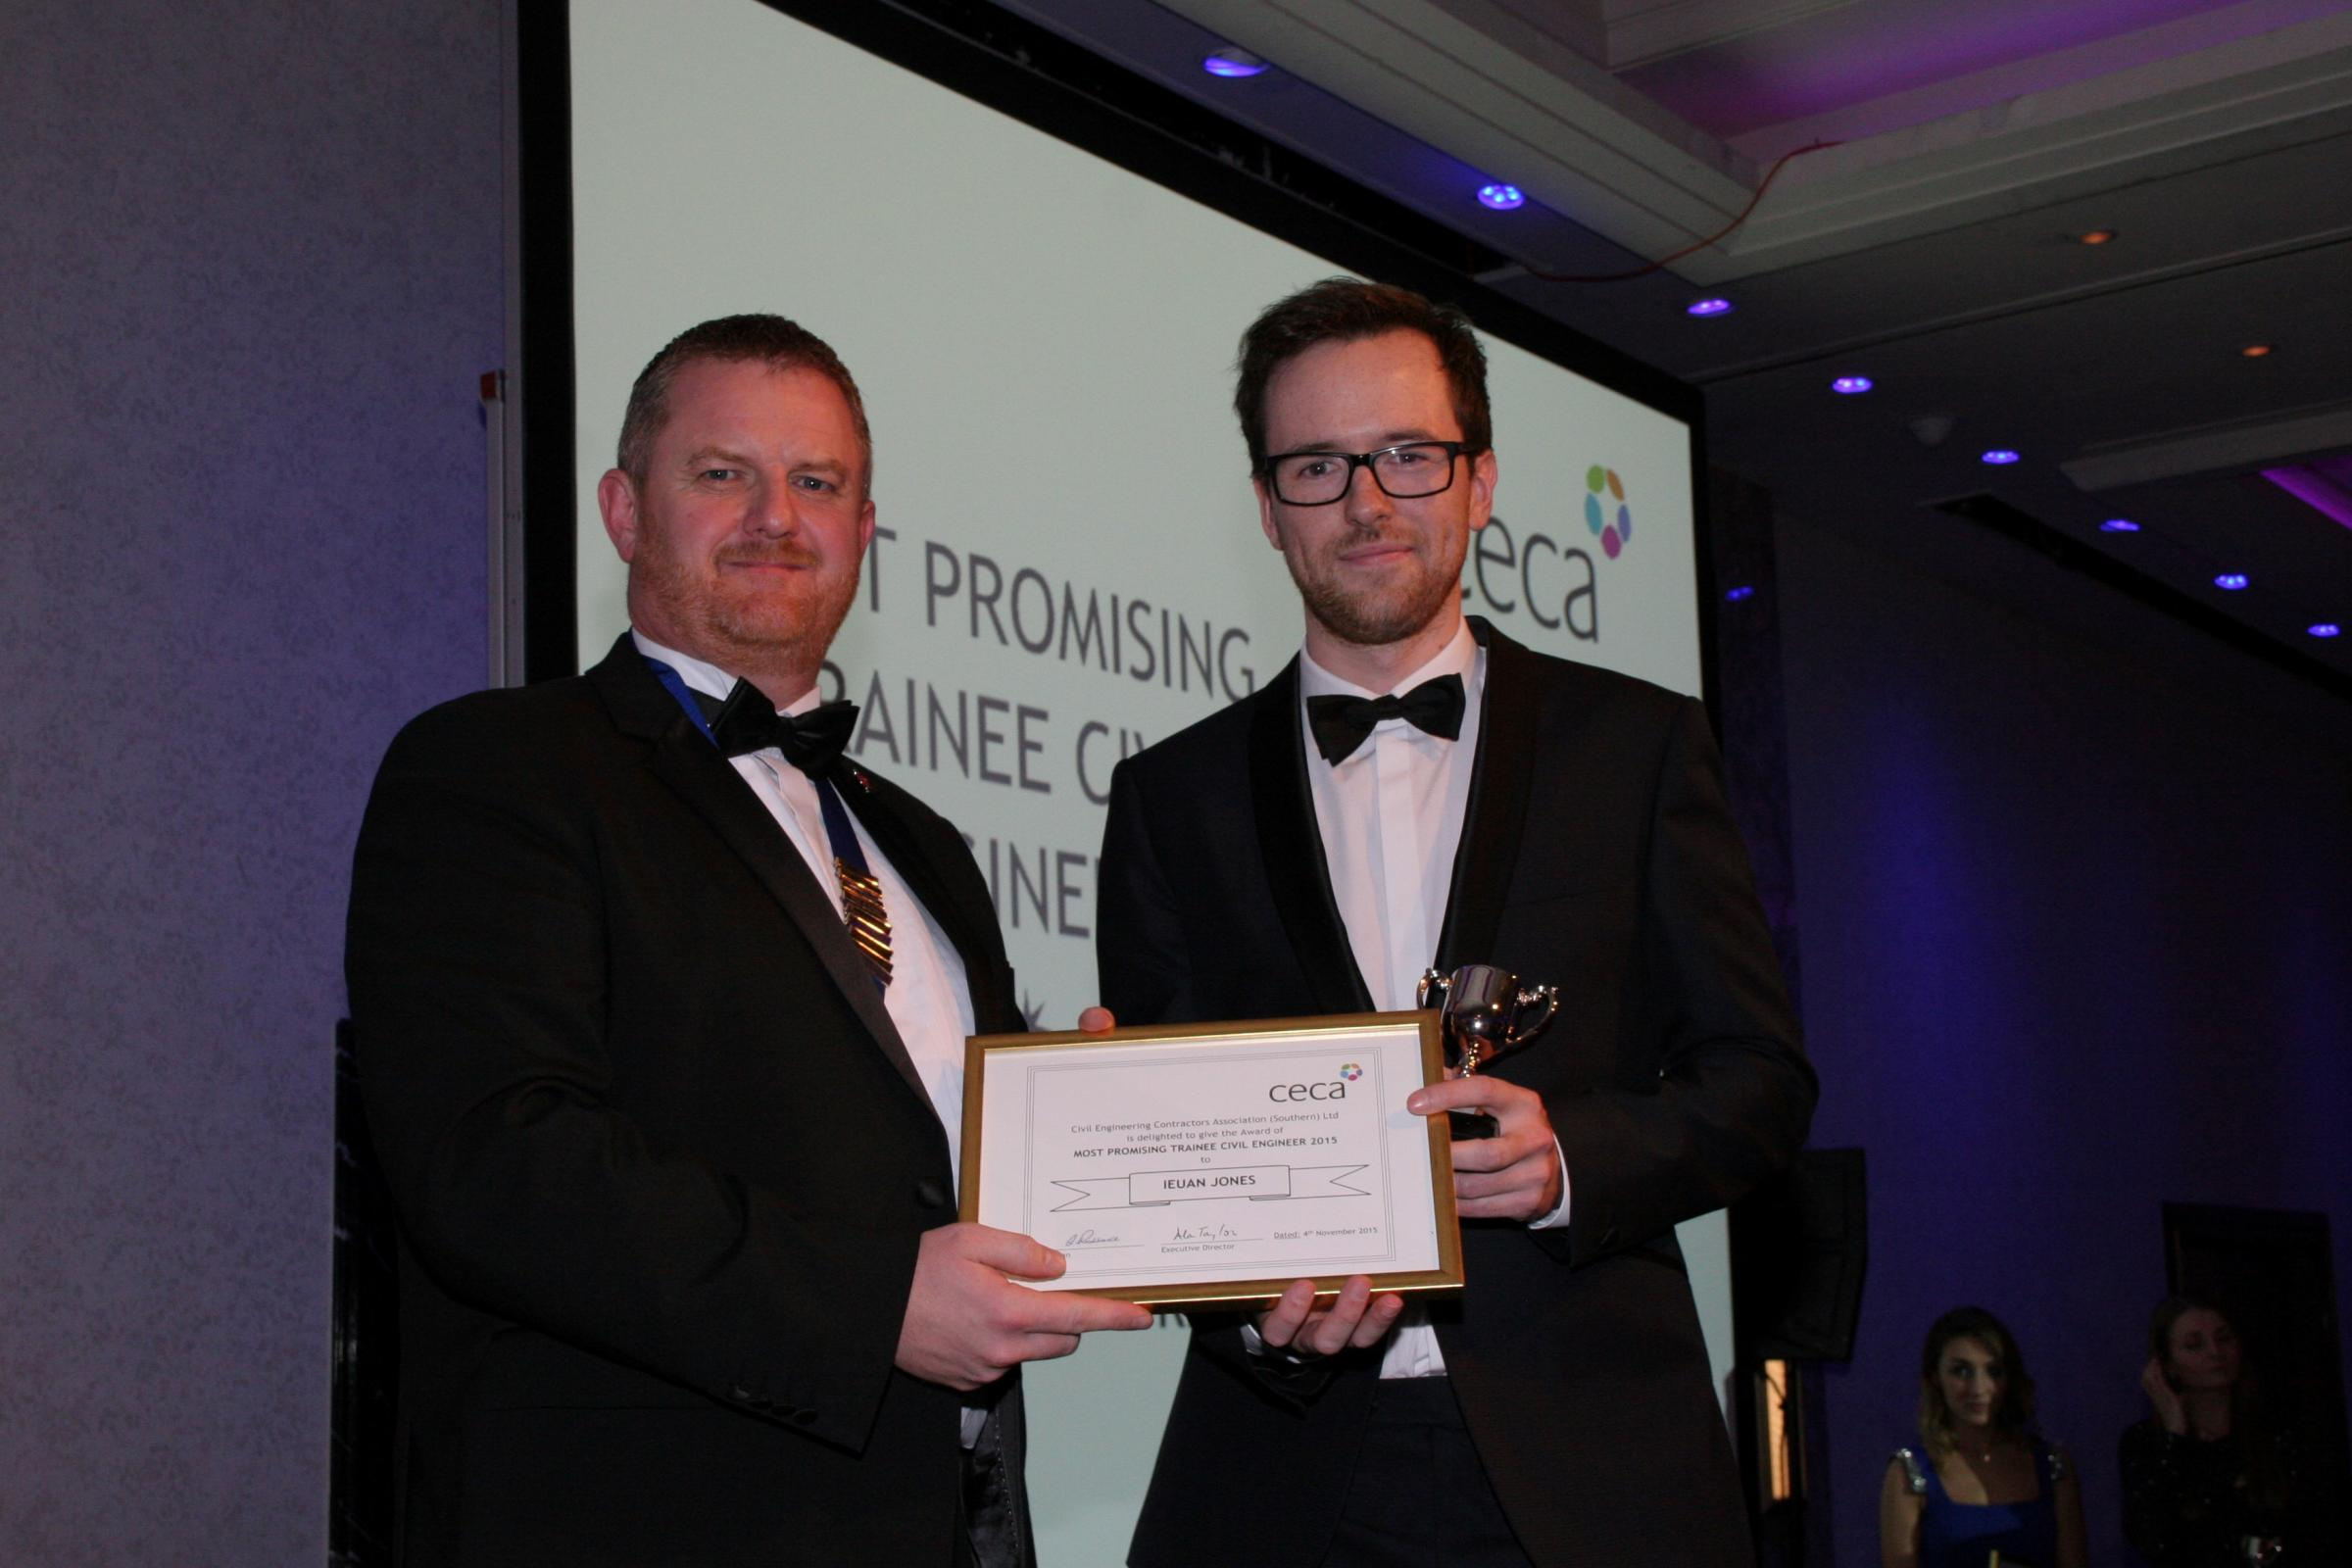 Ieuan Jones from Llandysul has been named the Most Promising Trainee Civil Engineer in the prestigious Civil Engineering Contractors Association (CECA) Southern awards programme (47717061)